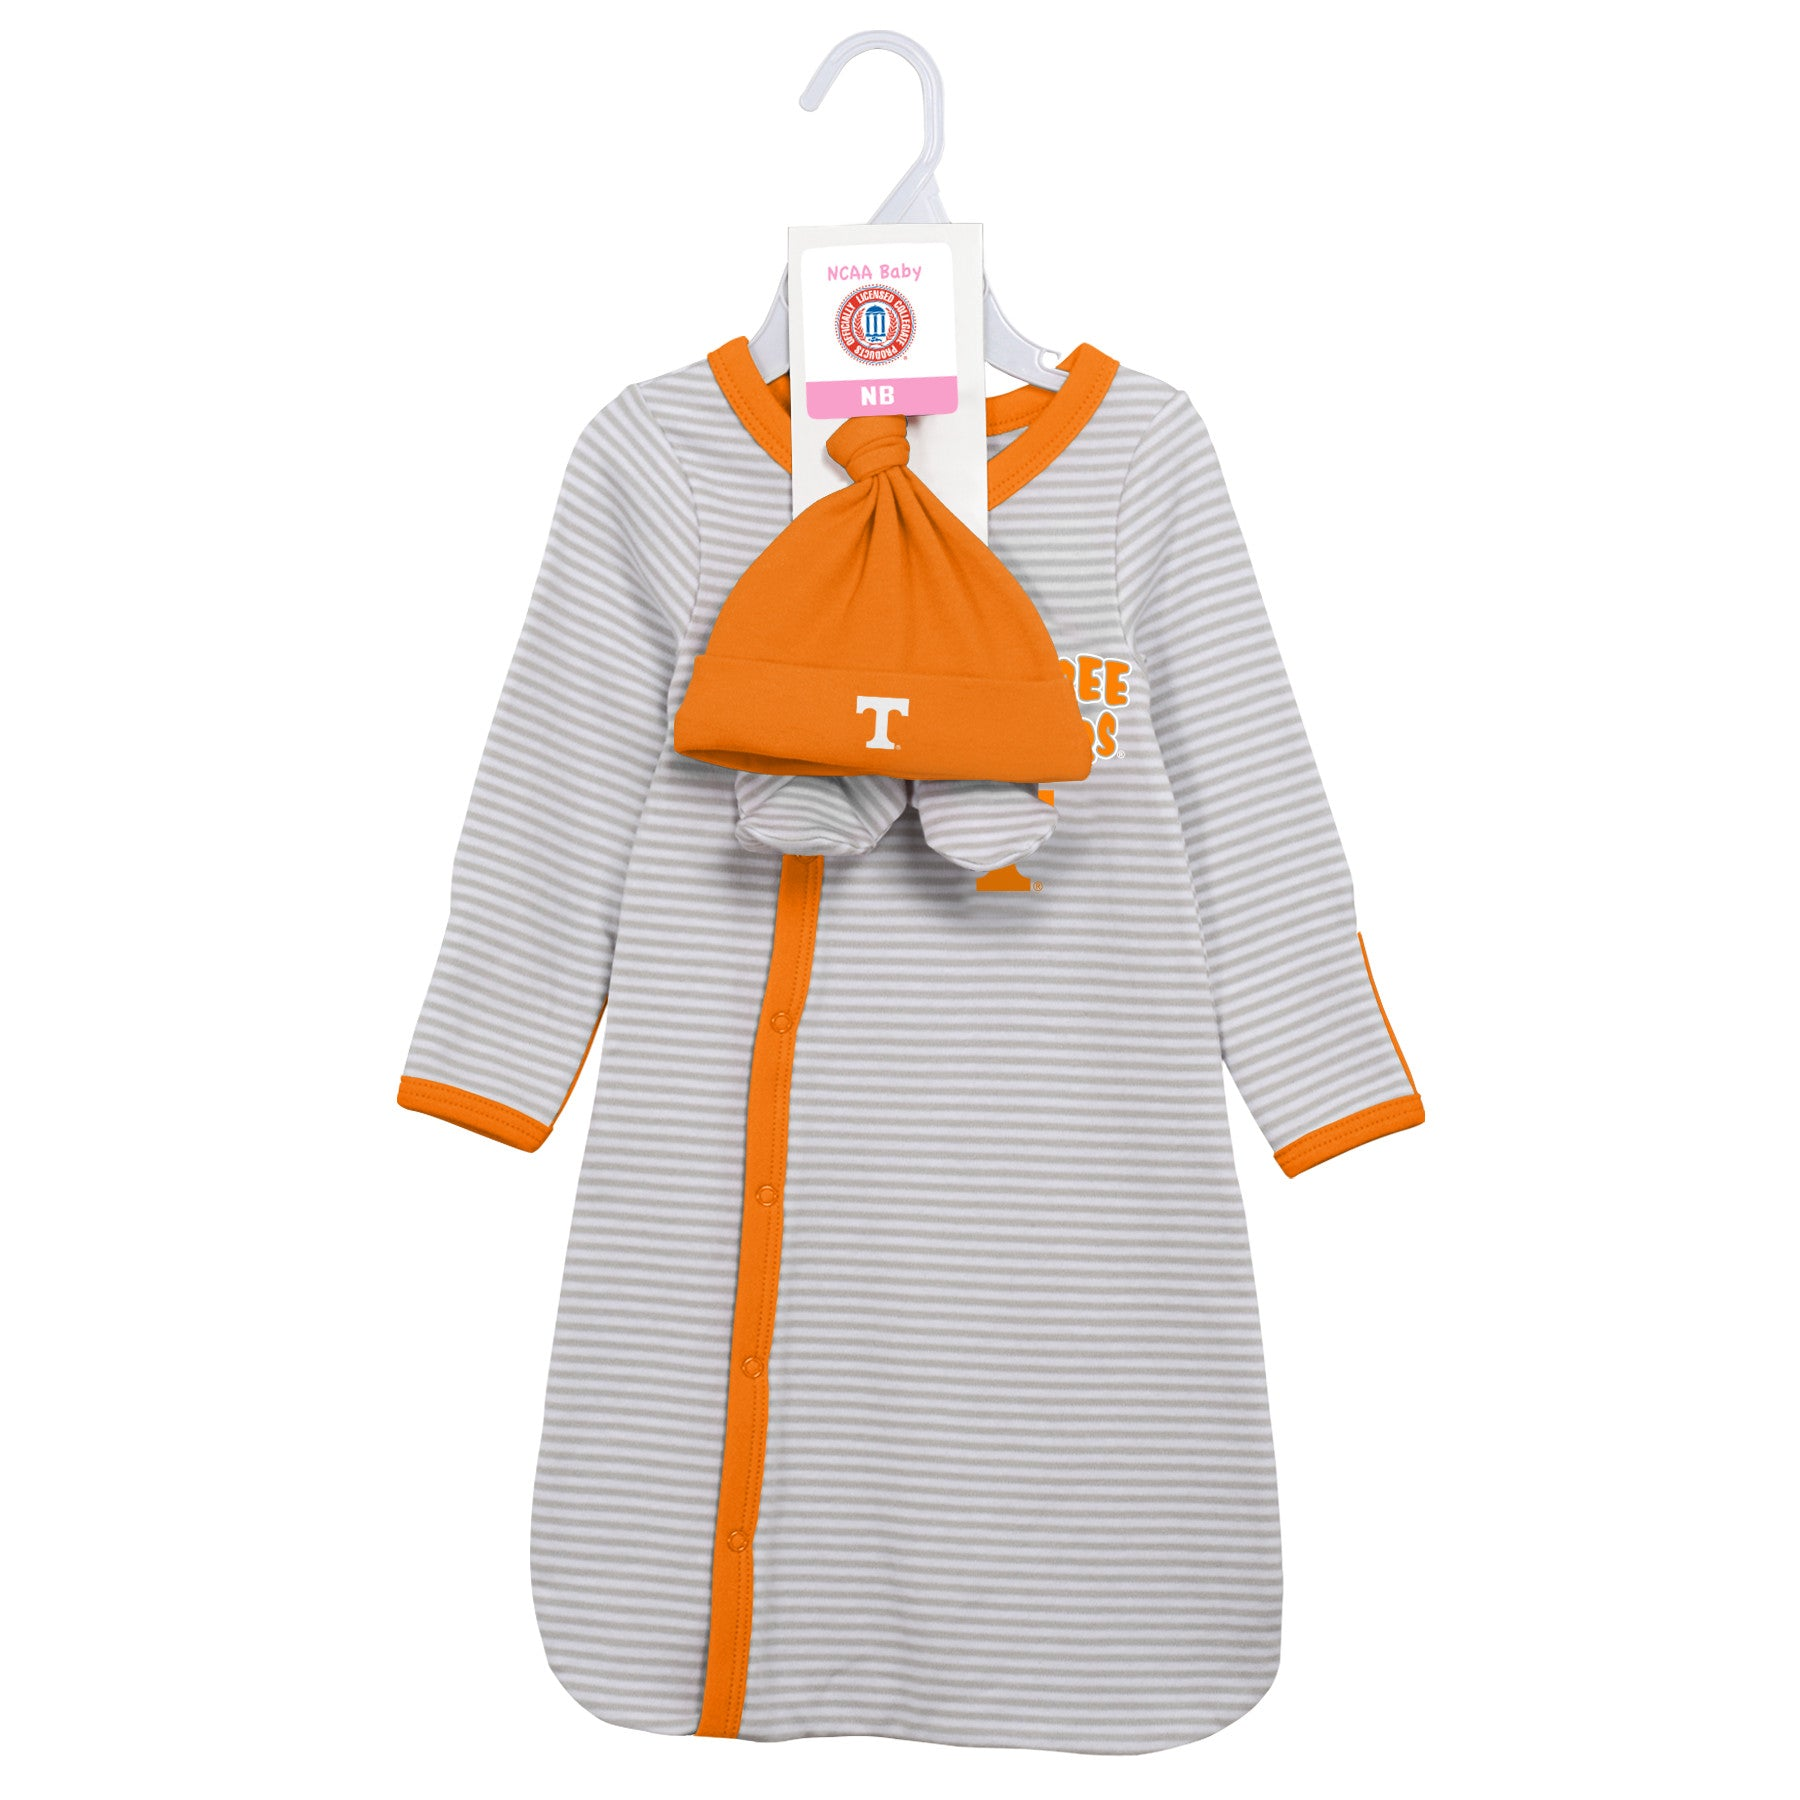 Tennessee Infant Gown, Cap and Booties – babyfans